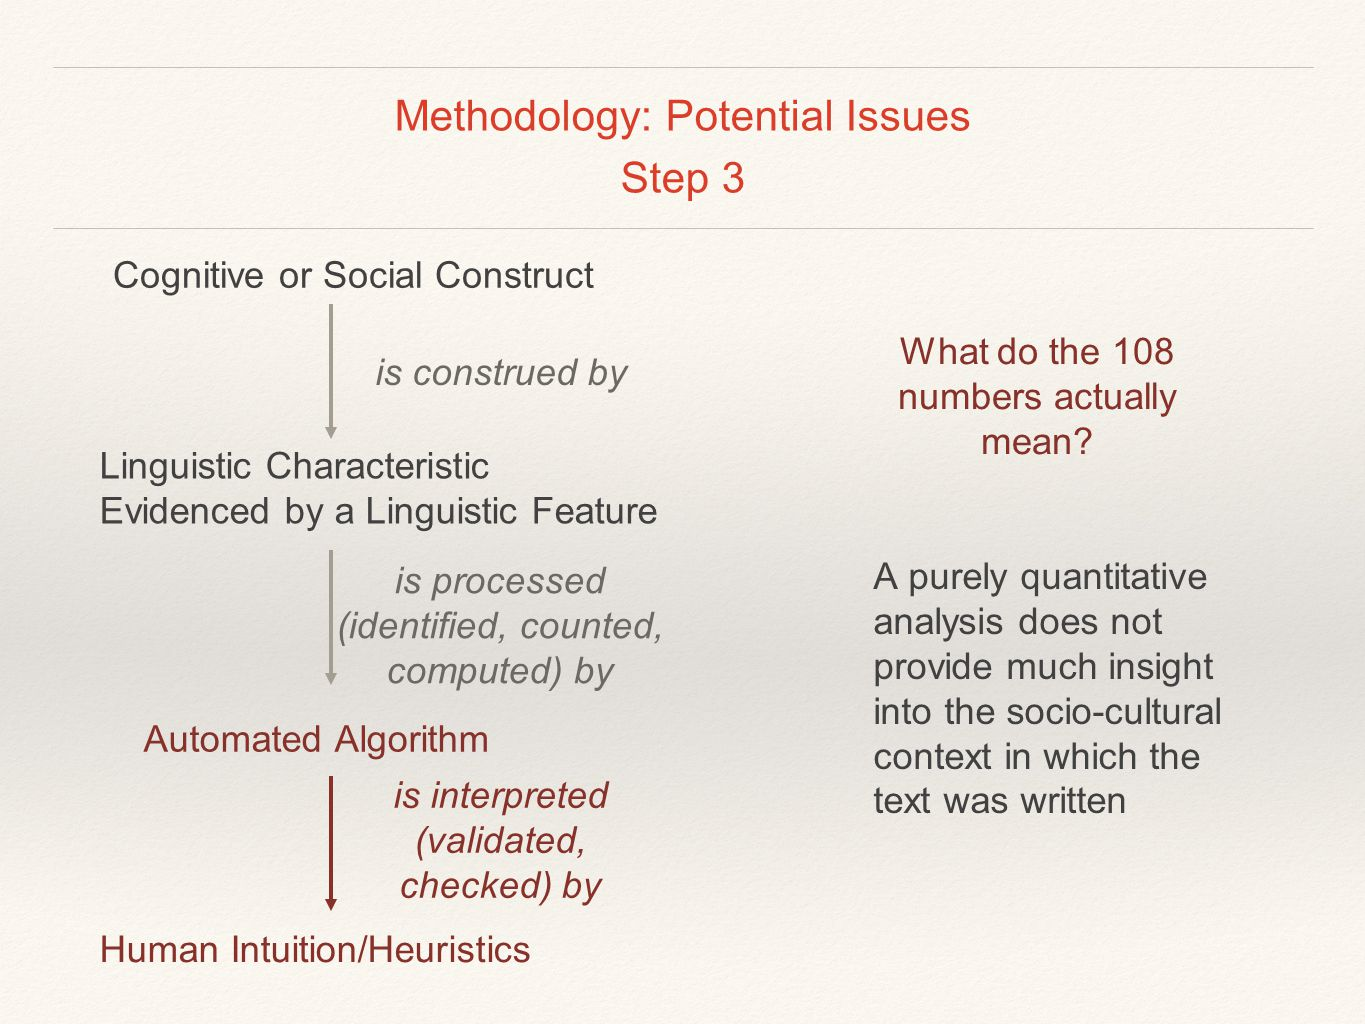 Methodology: Potential Issues Step 3 What do the 108 numbers actually mean? A purely quantitative analysis does not provide much insight into the soci